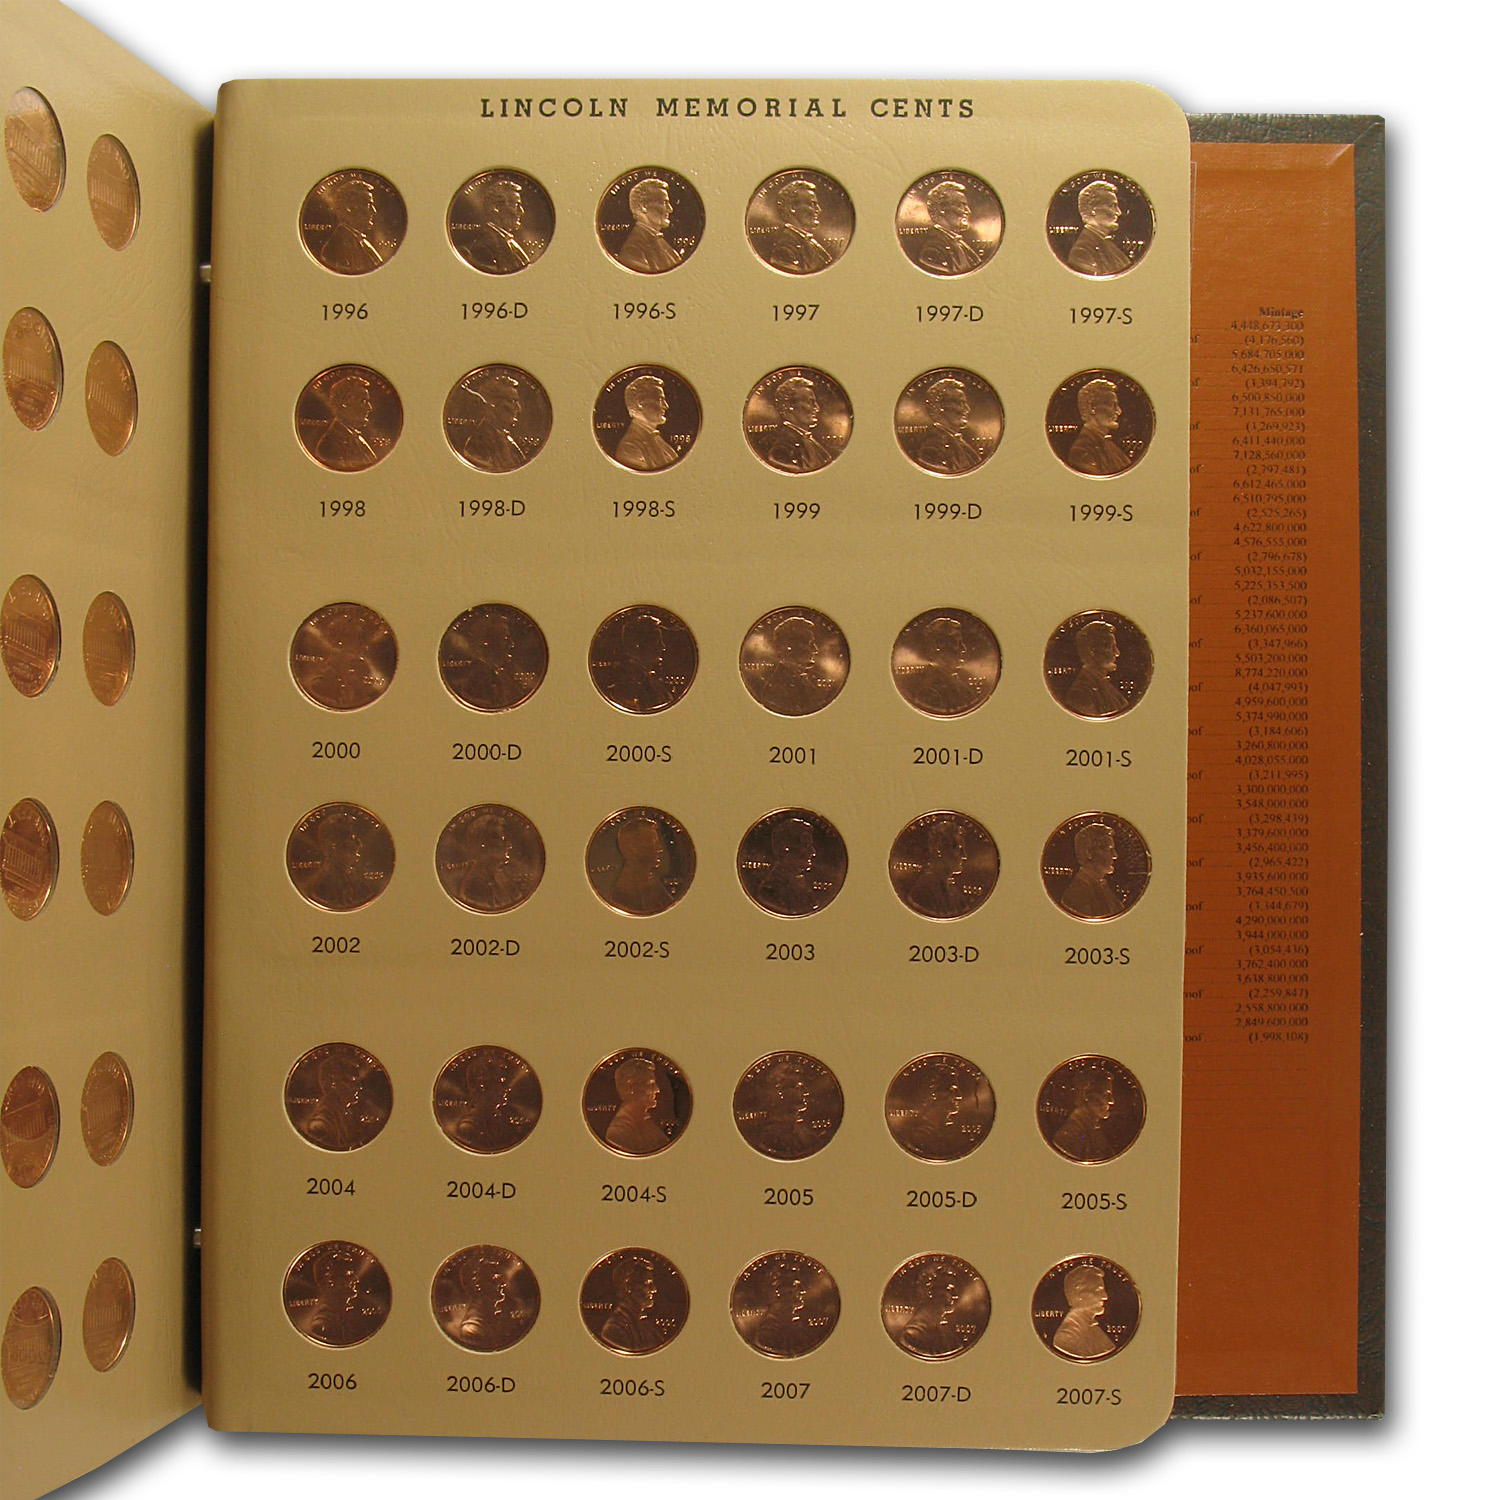 1909-2009 Near Complete Lincoln Cent Set Dansco Album